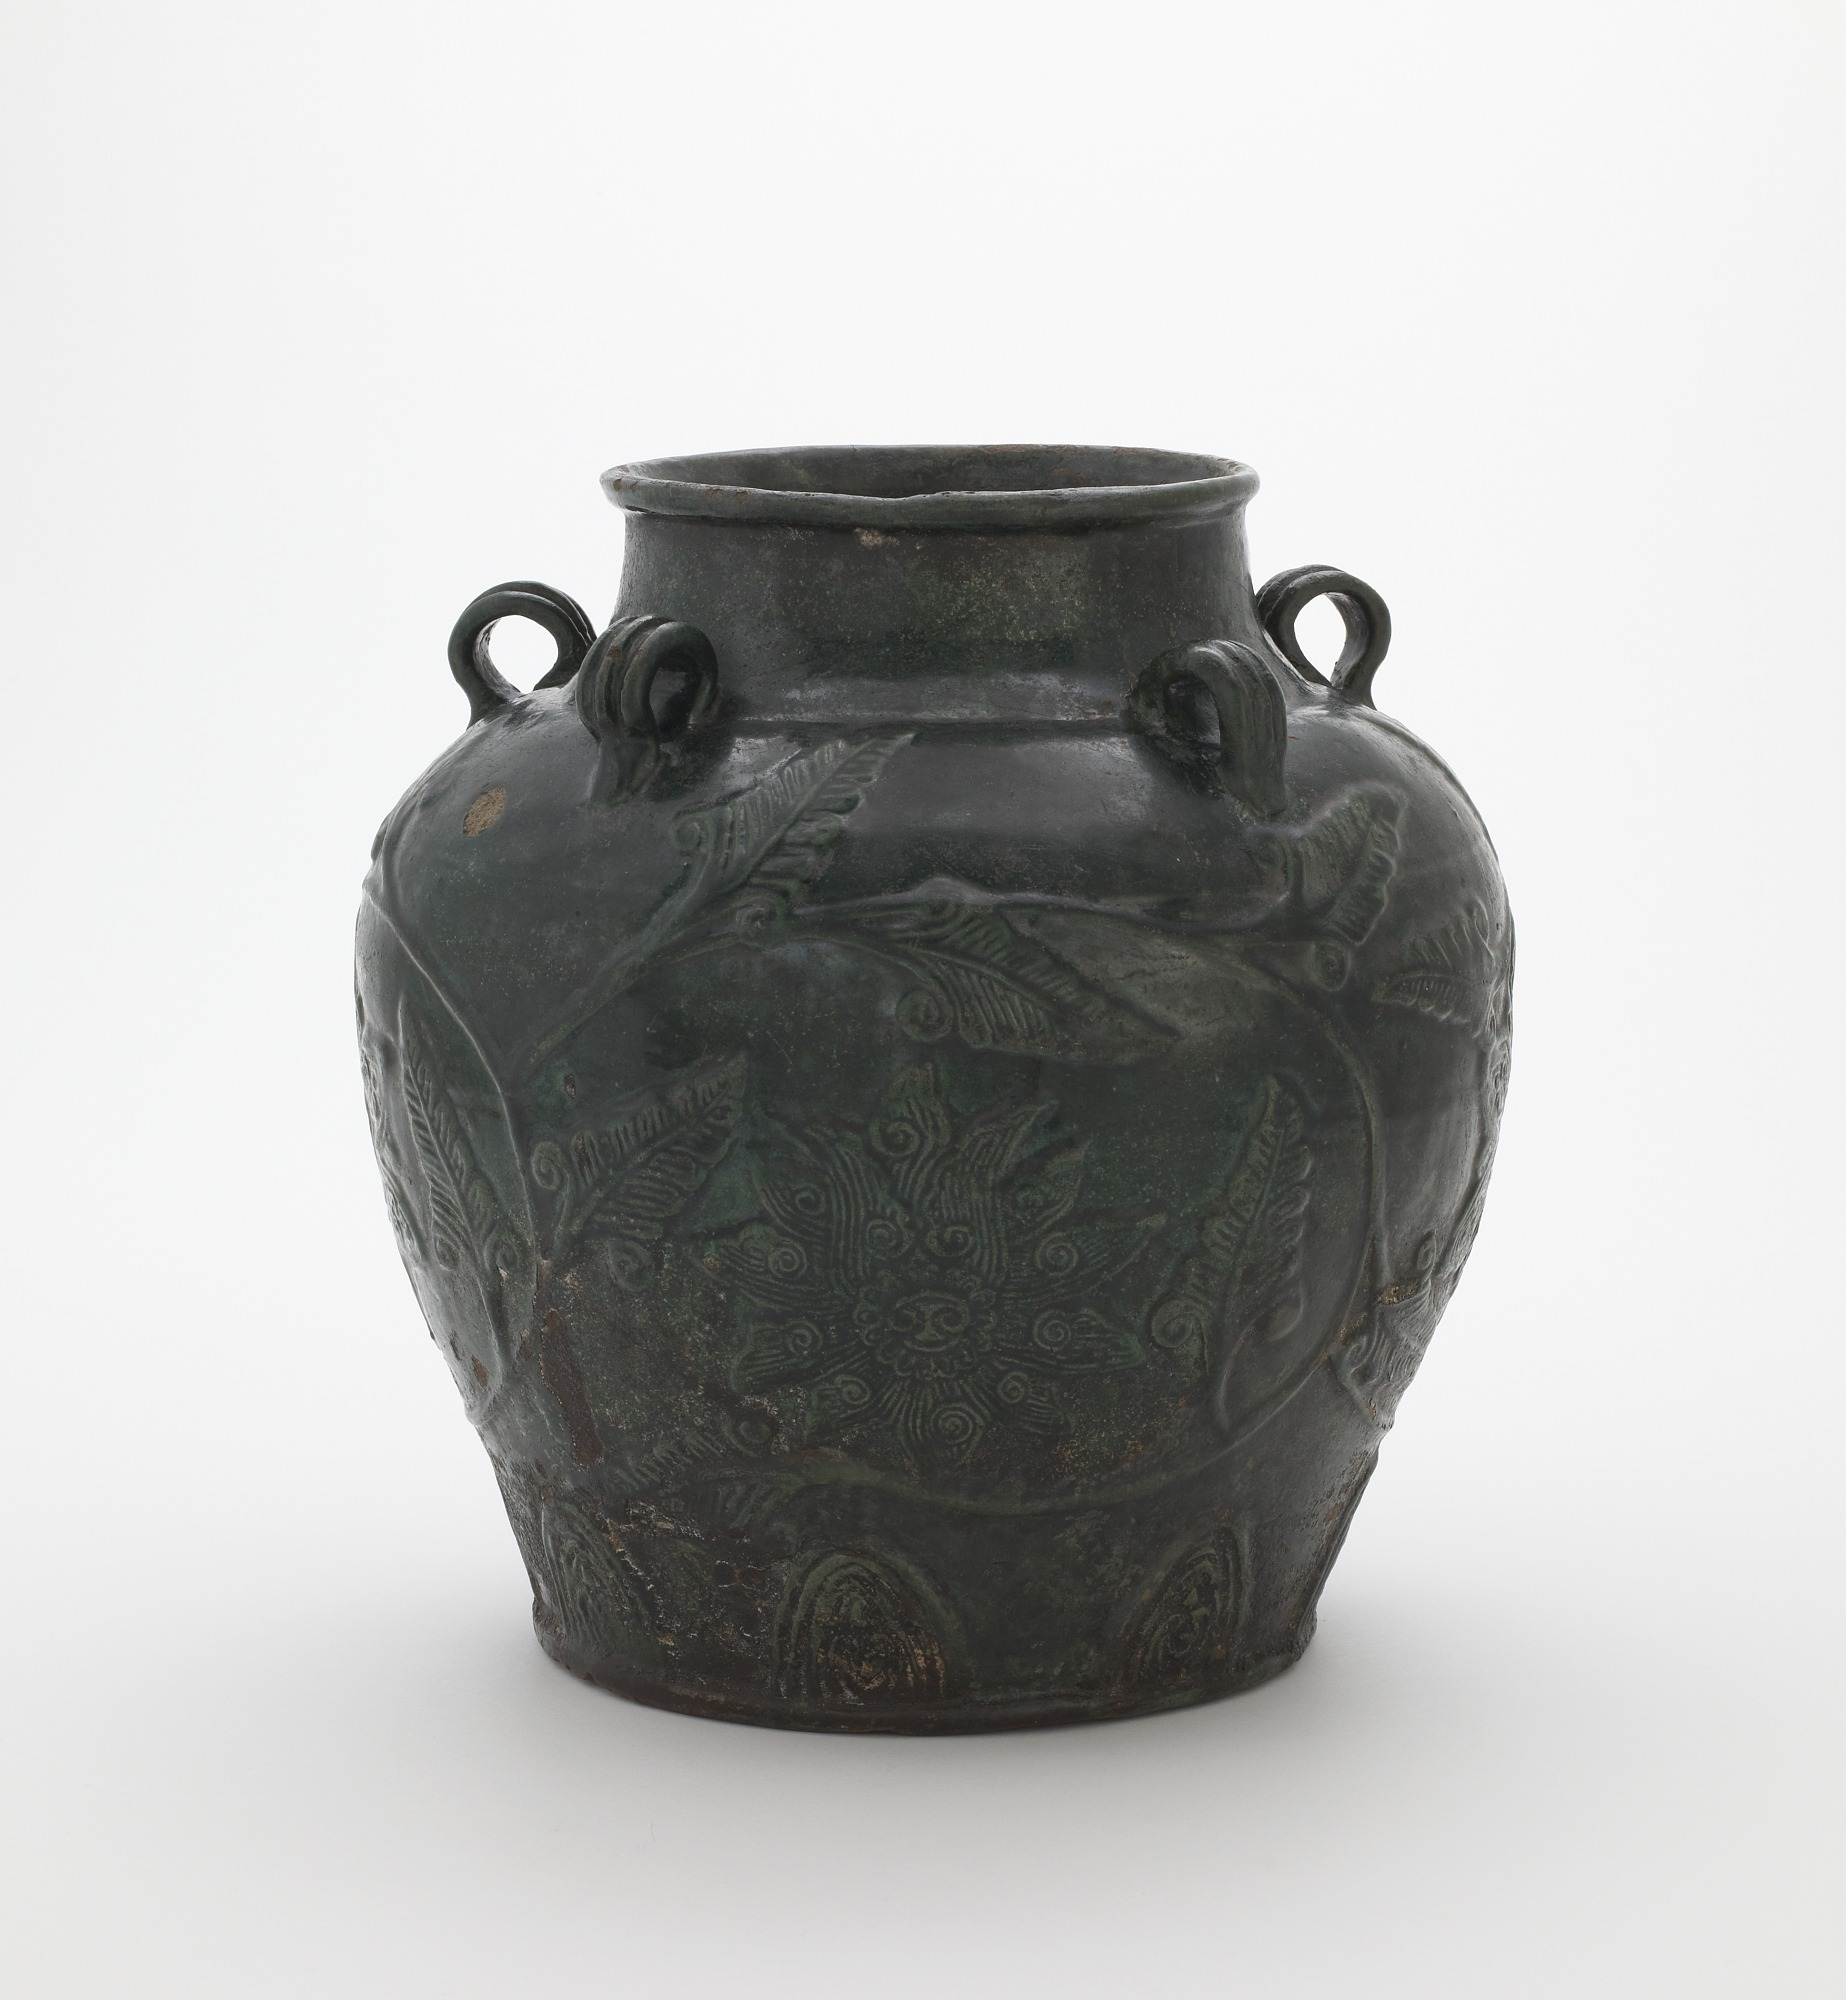 Zhangzhou ware jar with five loop handles and relief floral vinescroll decoration